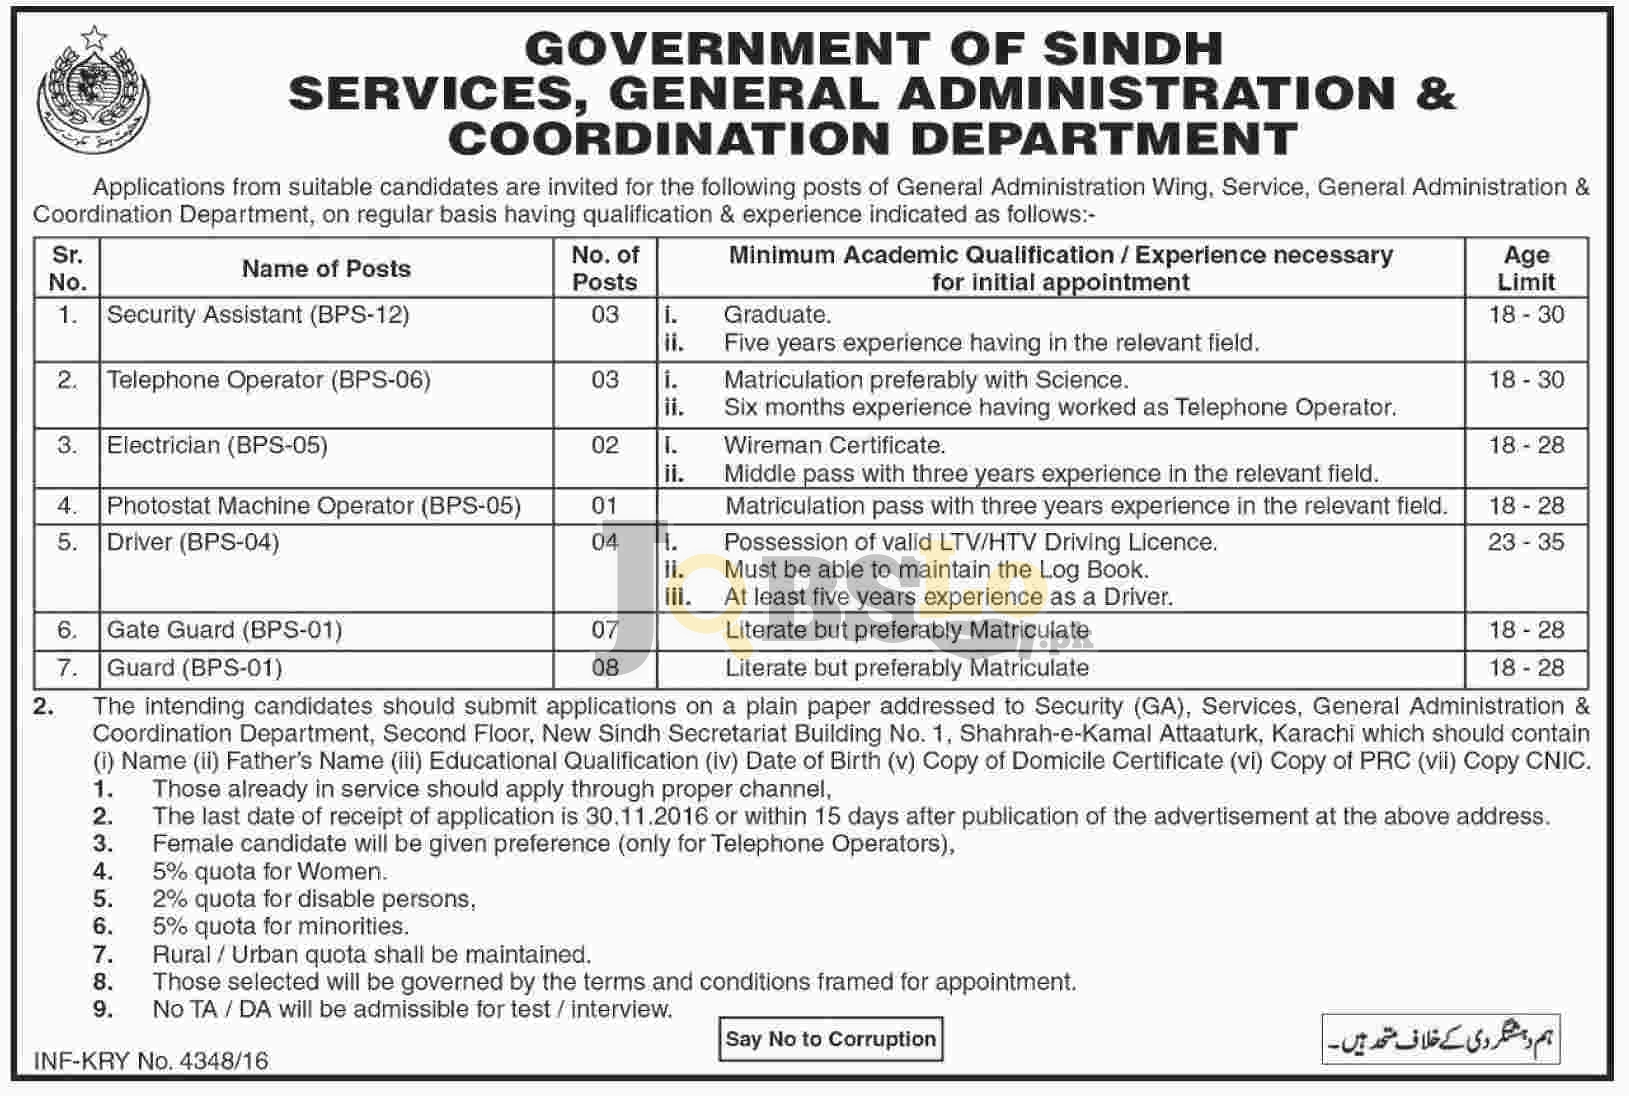 Services, General Administration & Coordination Department Sindh